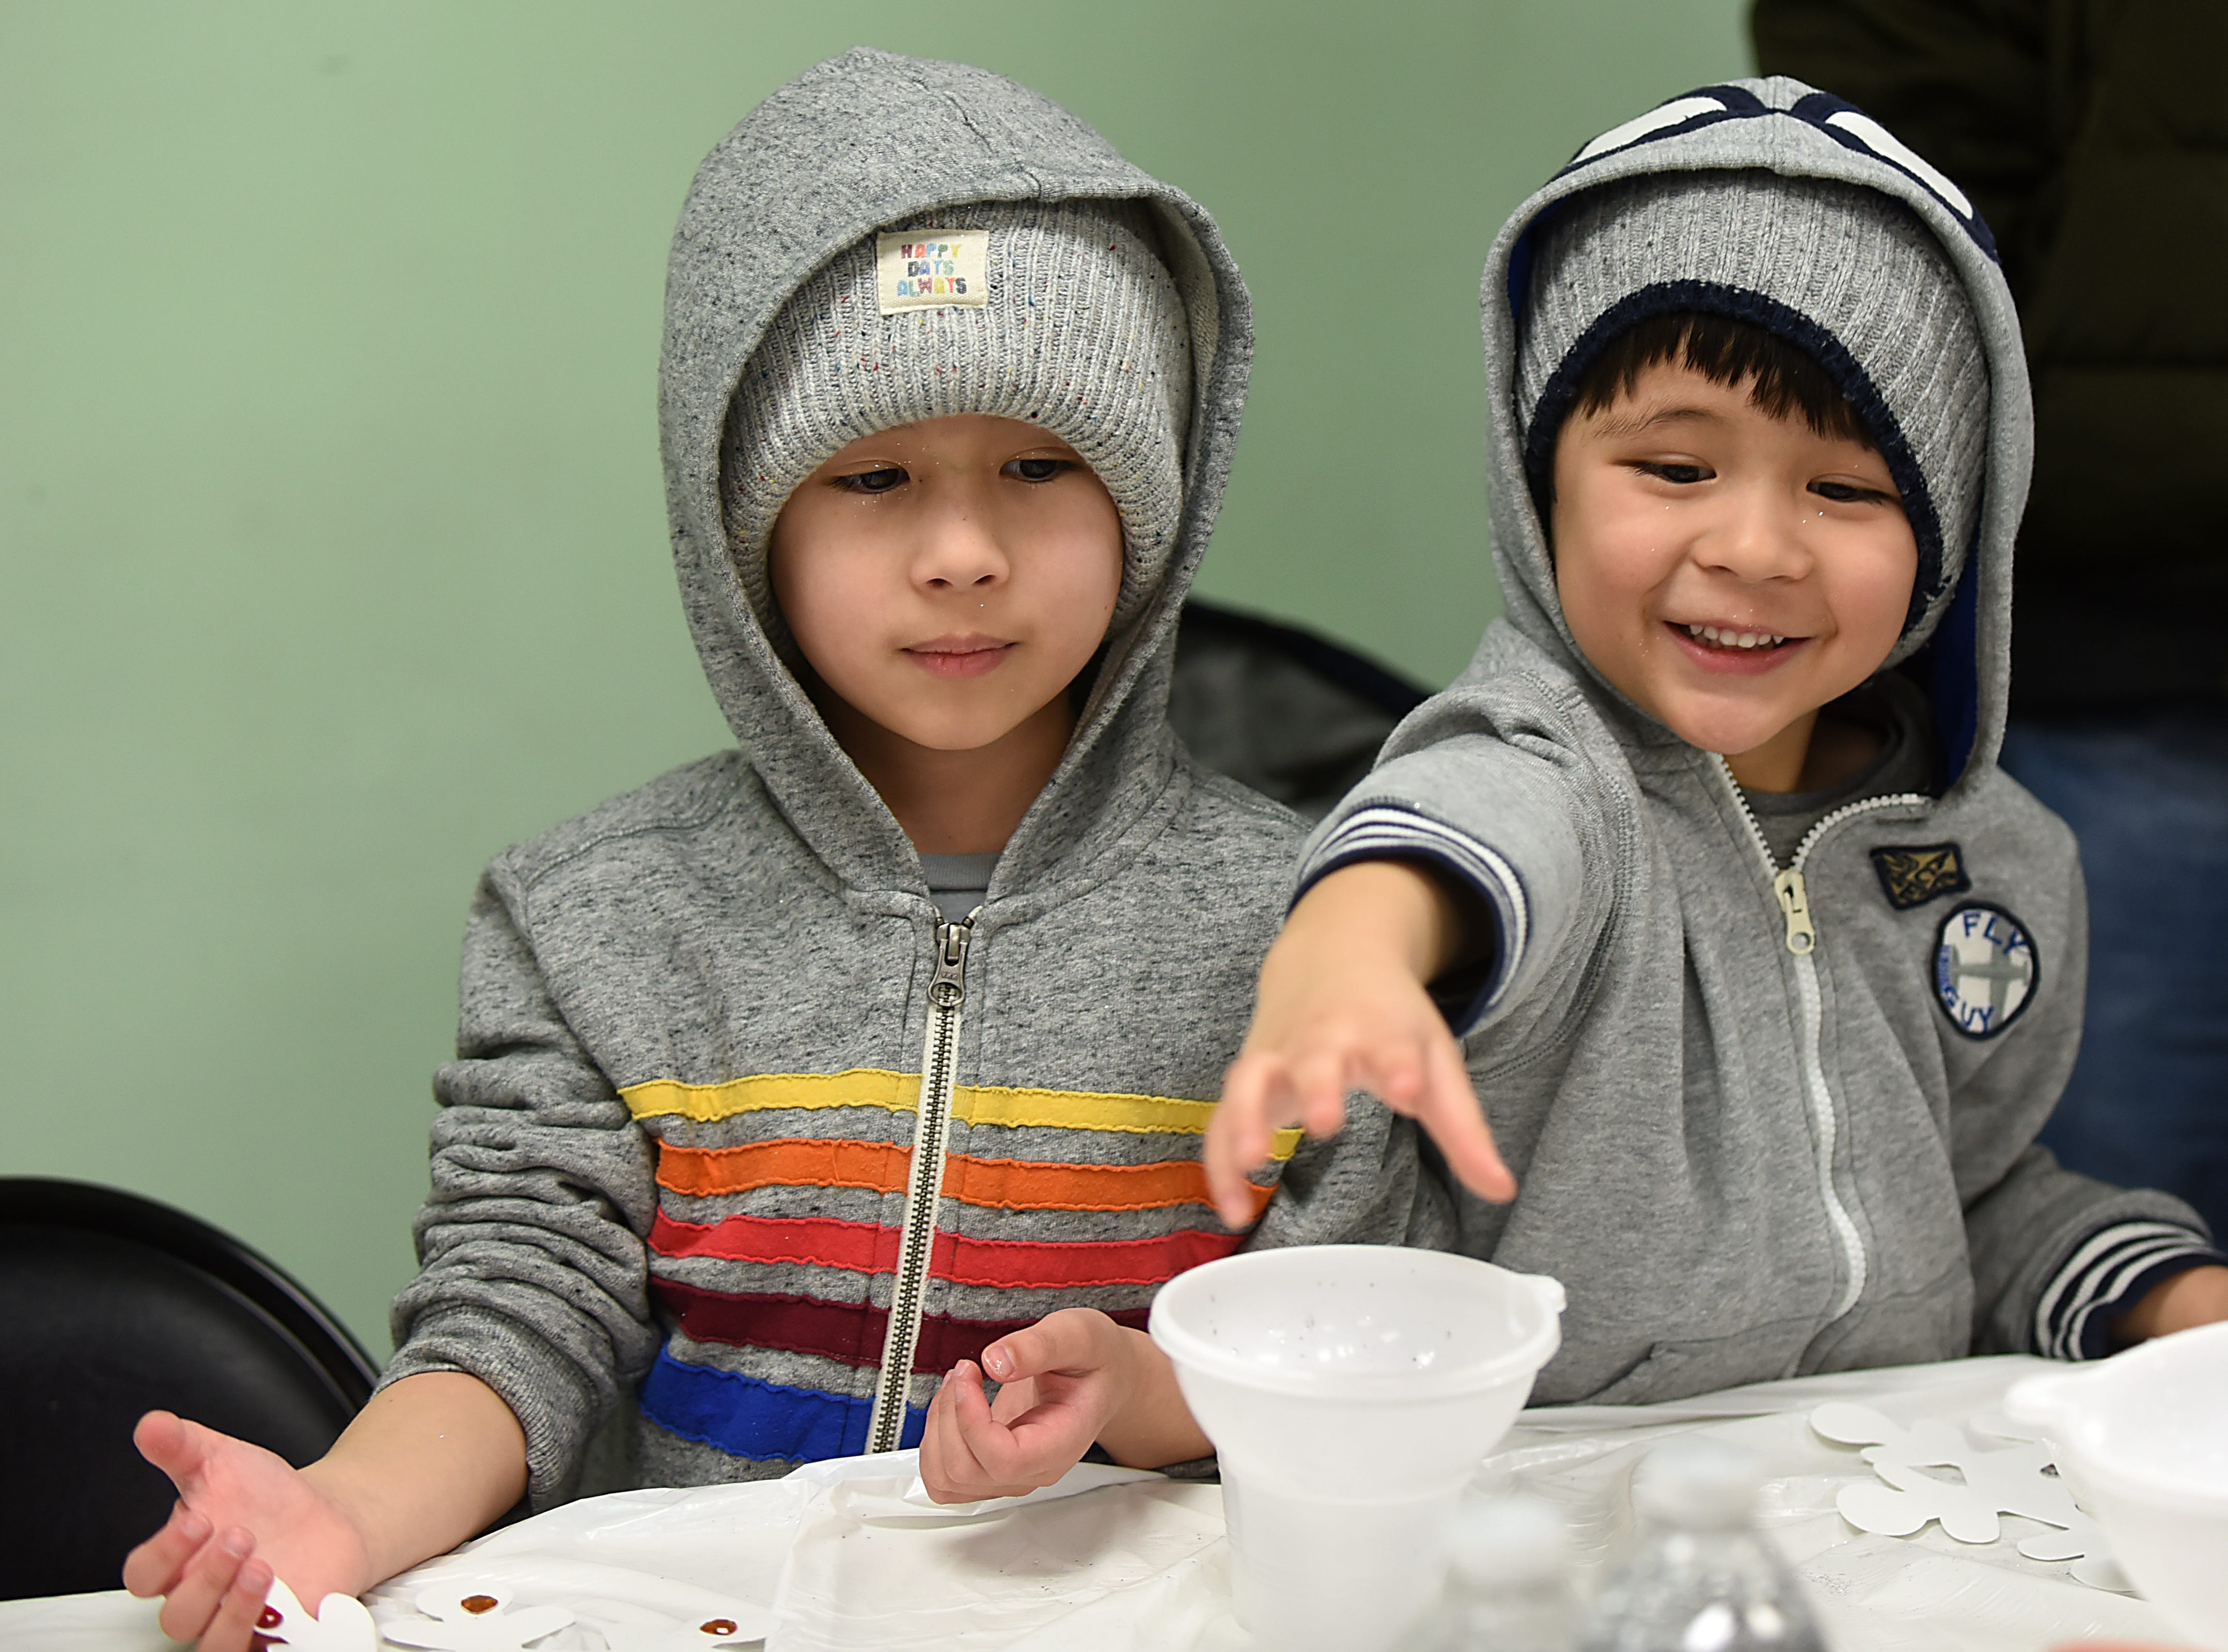 Children make a snowstorm in a bottle as part of the STEM Saturday series at East Rutherford Memorial Library on Saturday January 12, 2019. Alexander Green, 4 and Anthony Green, 6  make their snowstorms.